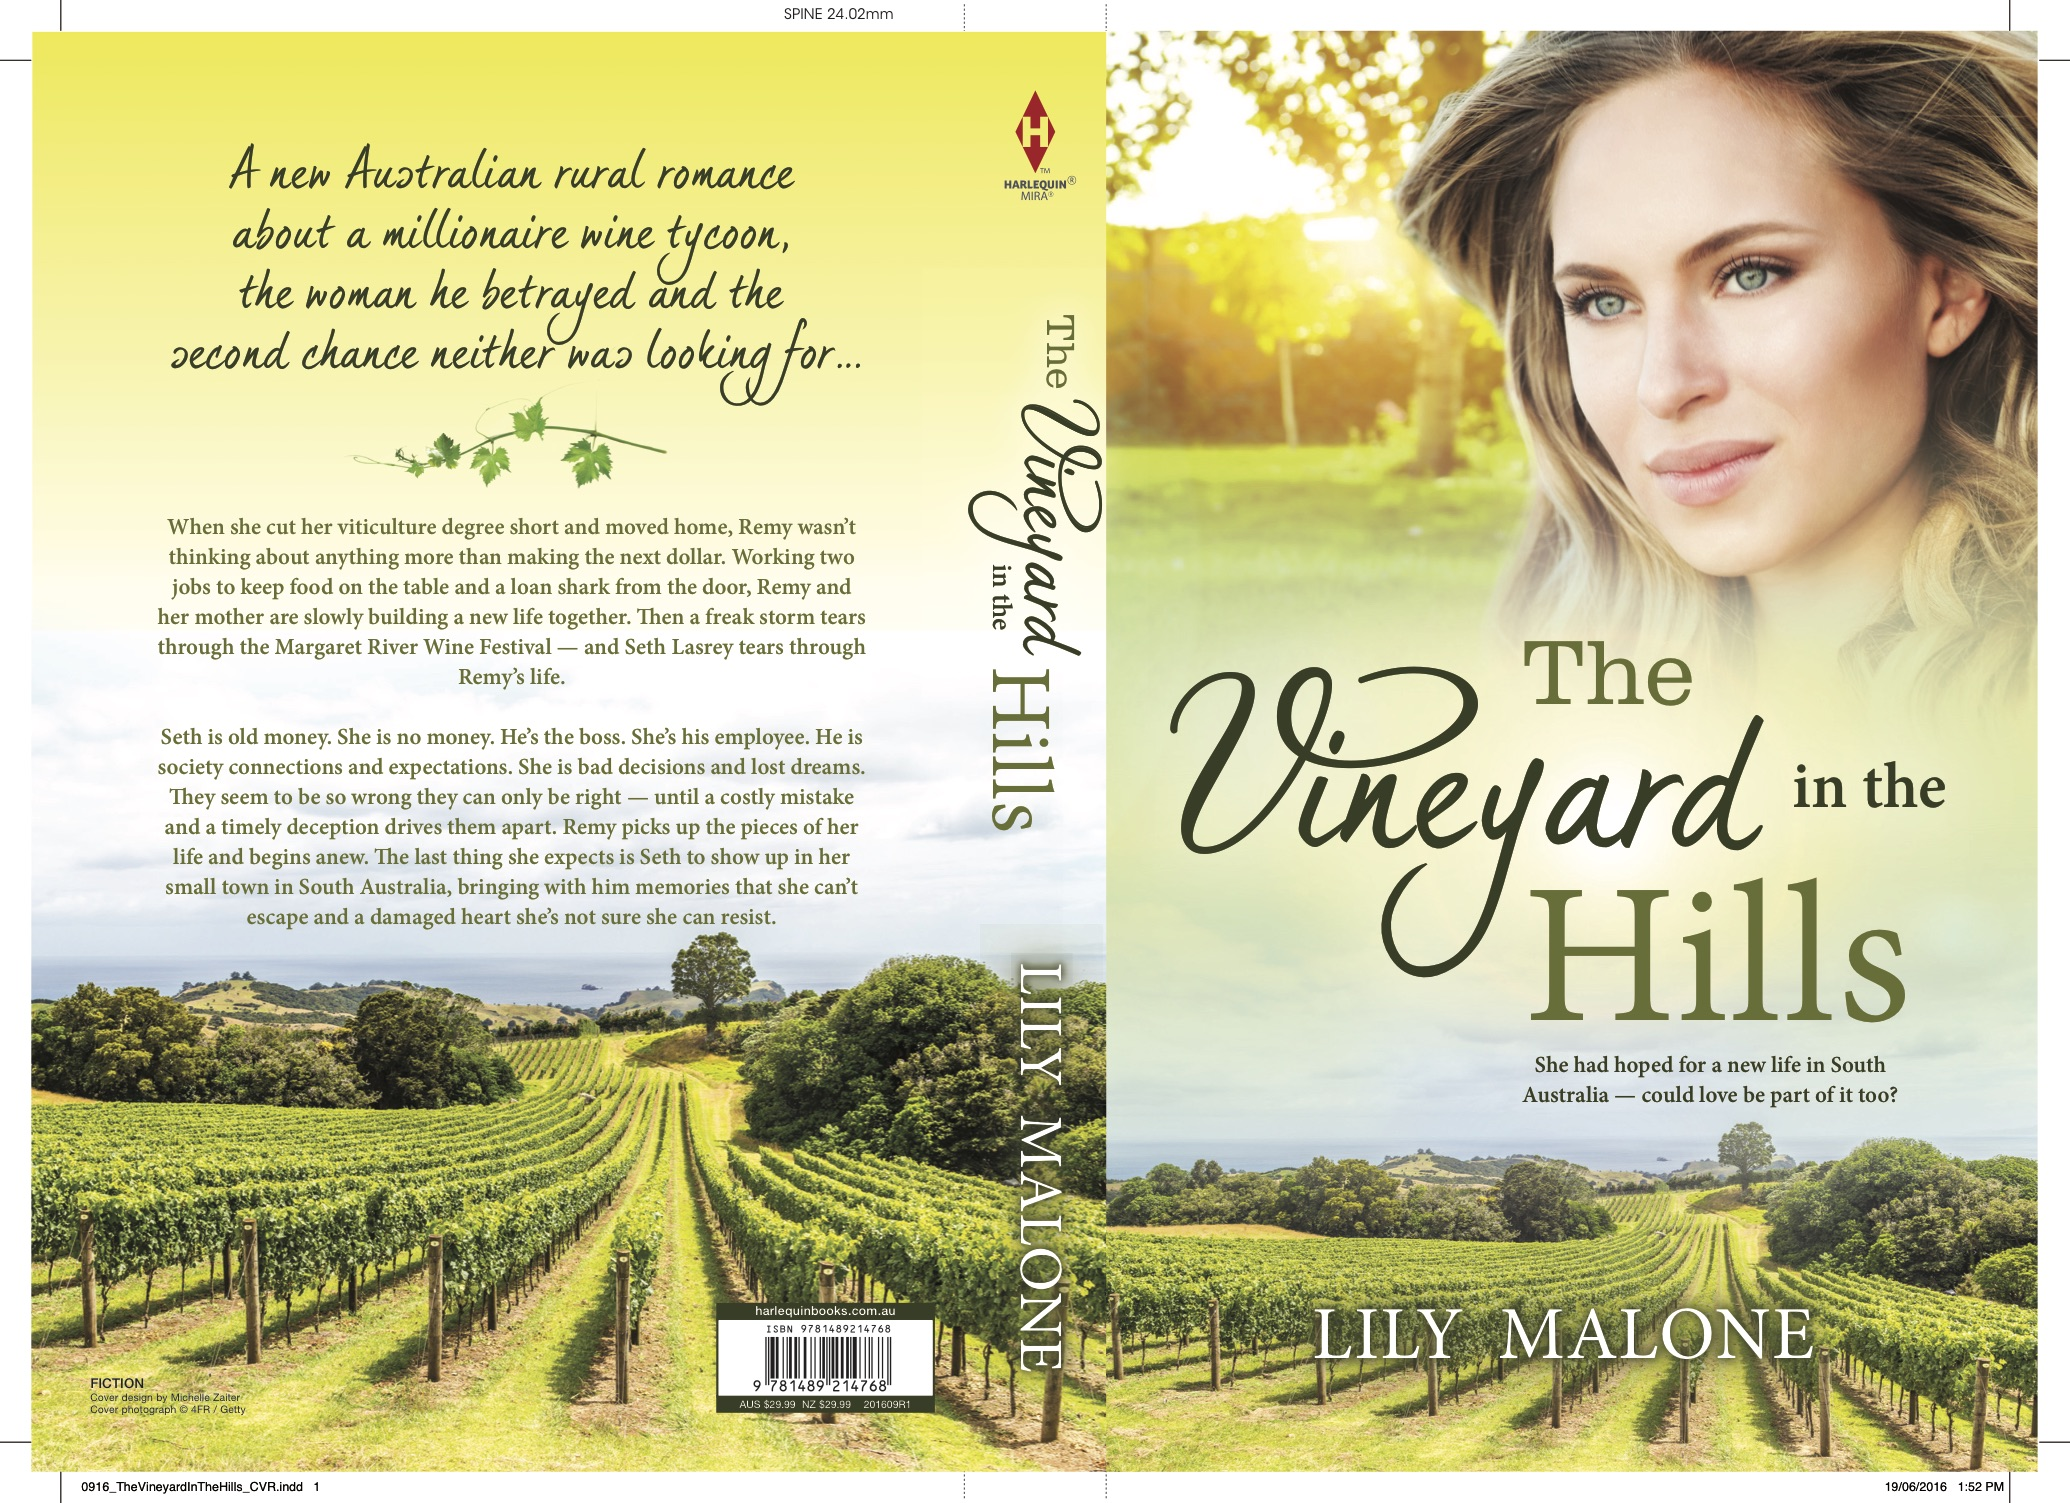 The Vineyard In The Hills print cover